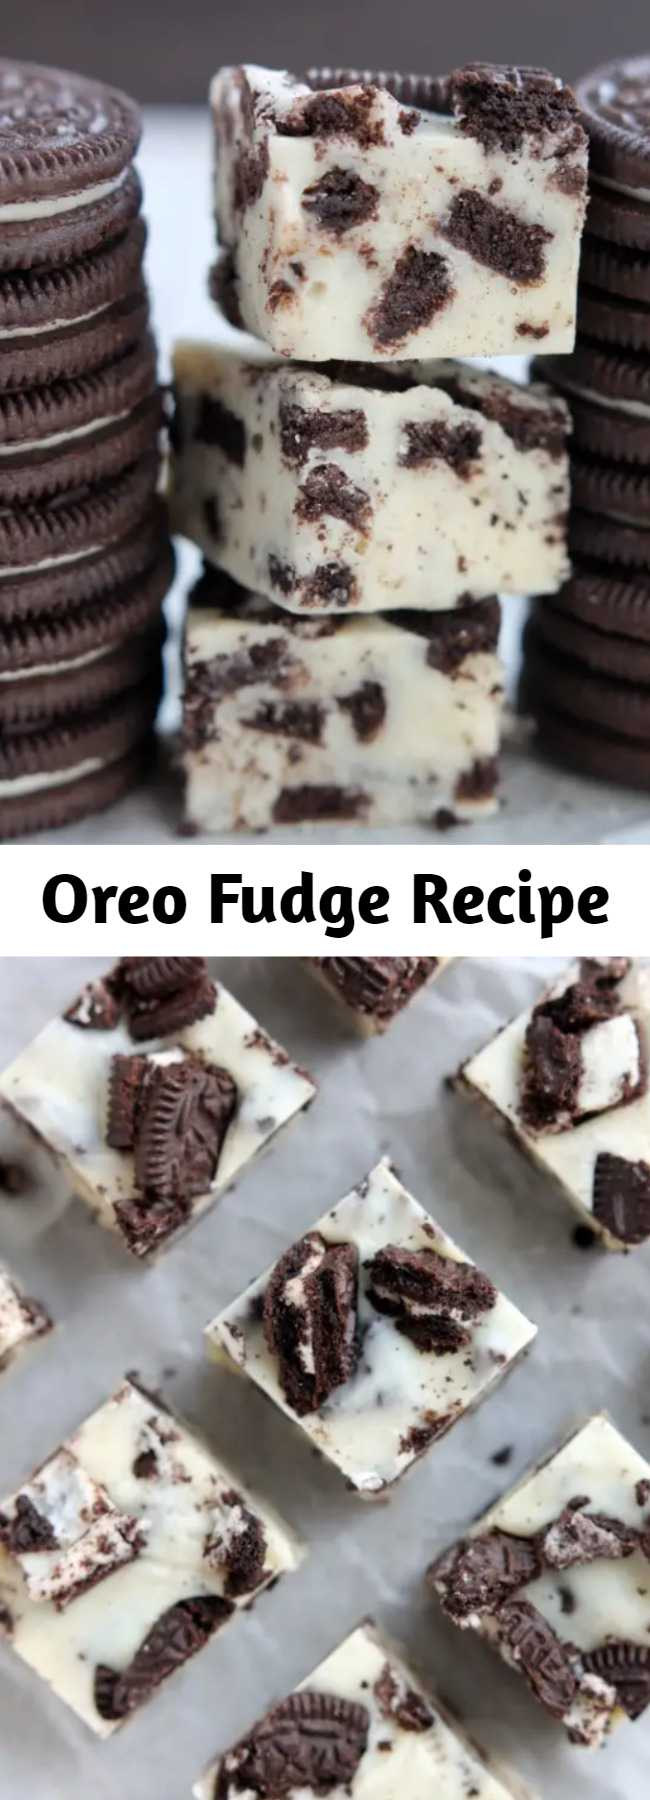 Oreo Fudge Recipe - This Oreo Fudge whips up fast, with only 3 ingredients! Perfect for Christmas neighbor plates!